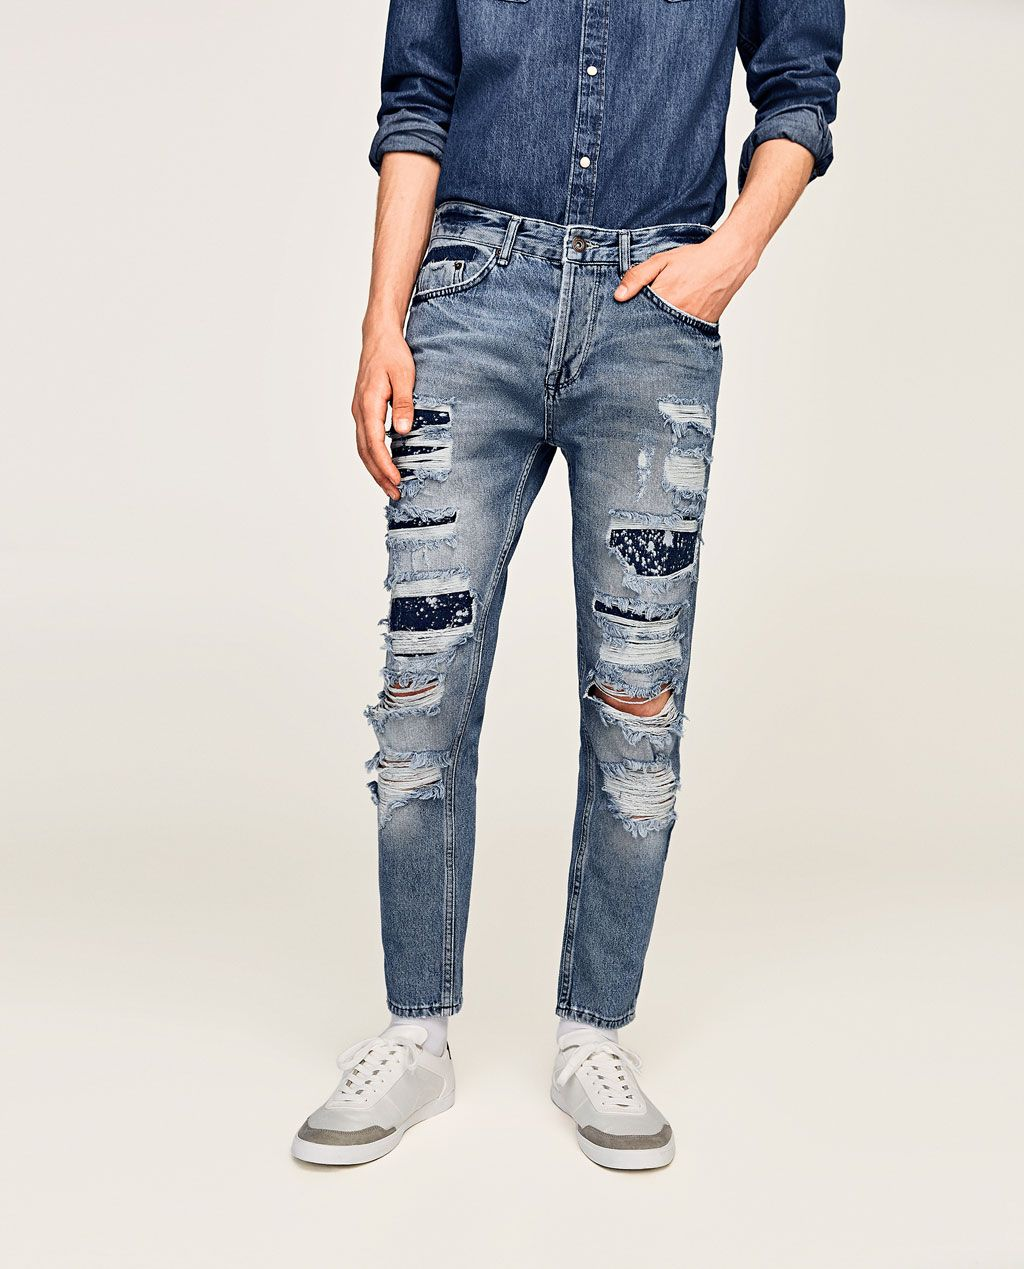 YYear Mens Casual Patch Slim Straight Leg Distressed Jeans Denim Pants